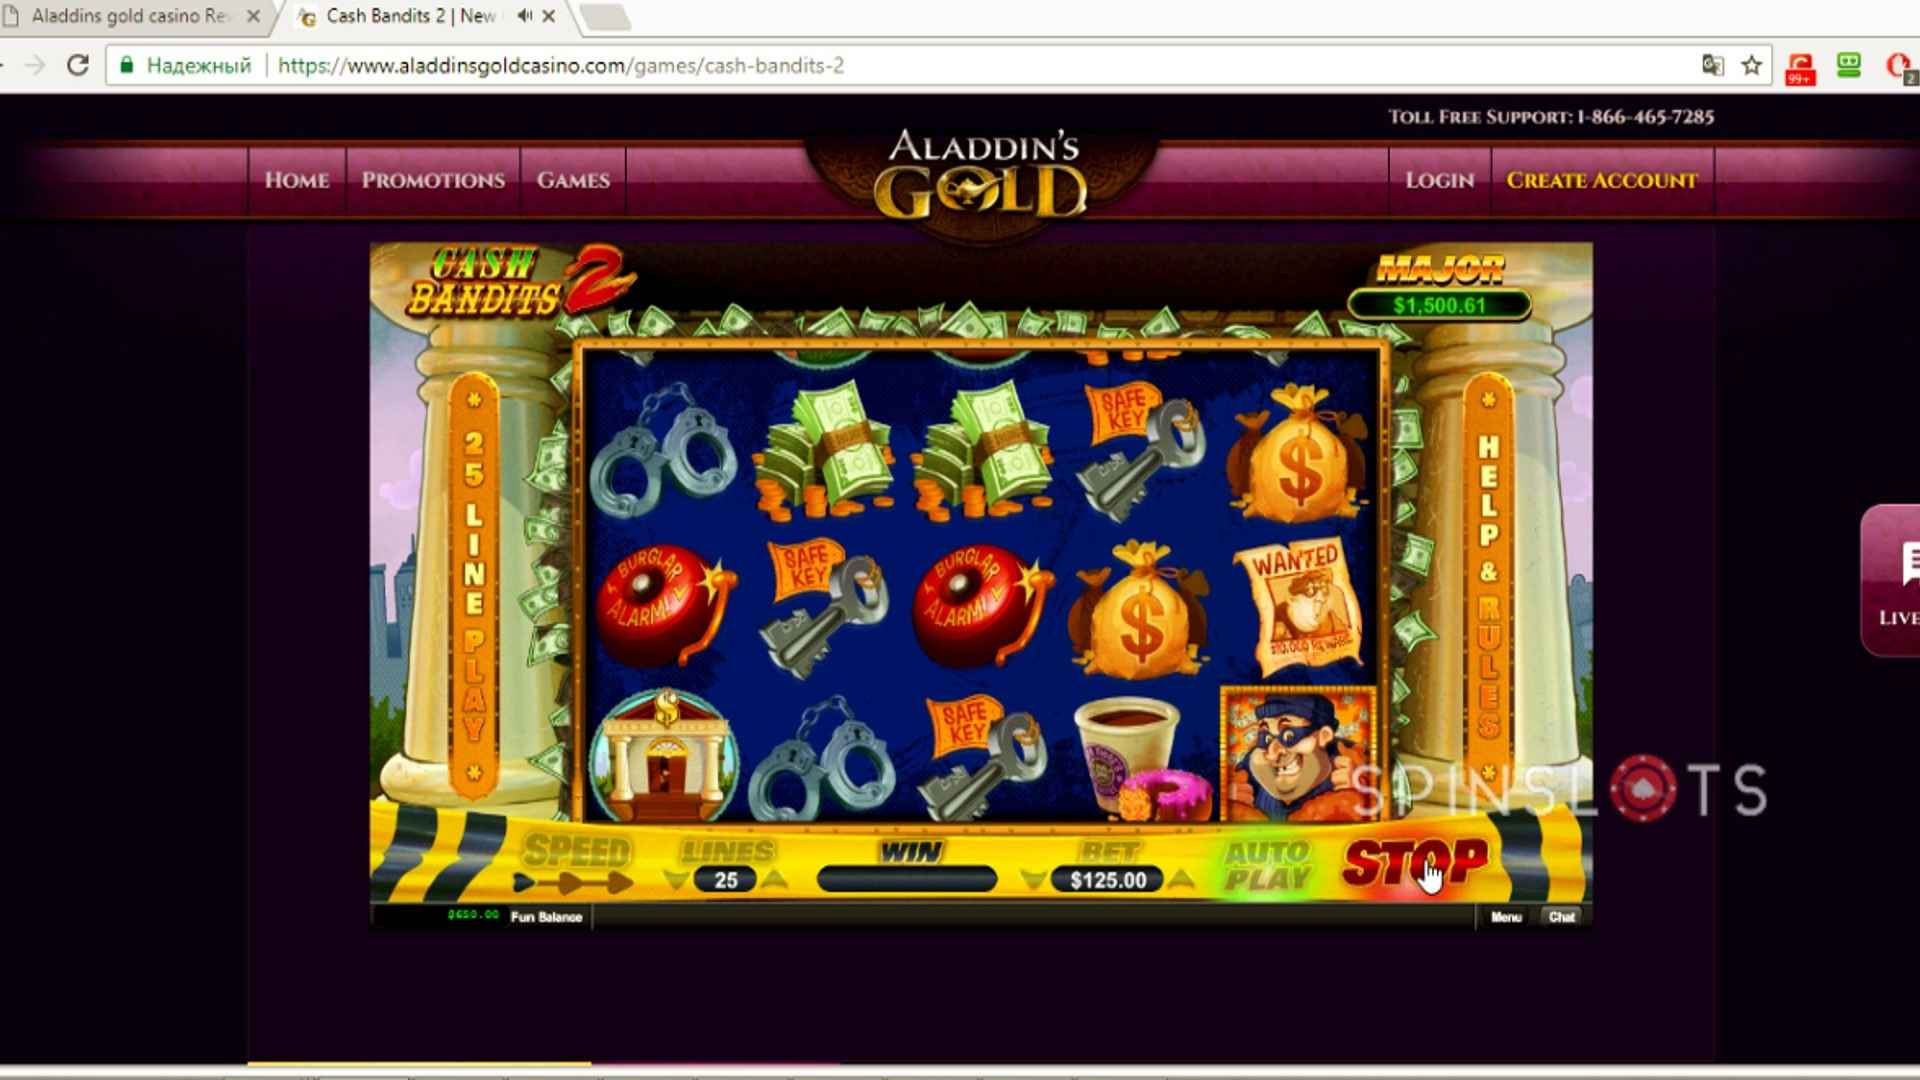 Aladdins Gold Casino Offers New Players Unlimited Bonuses